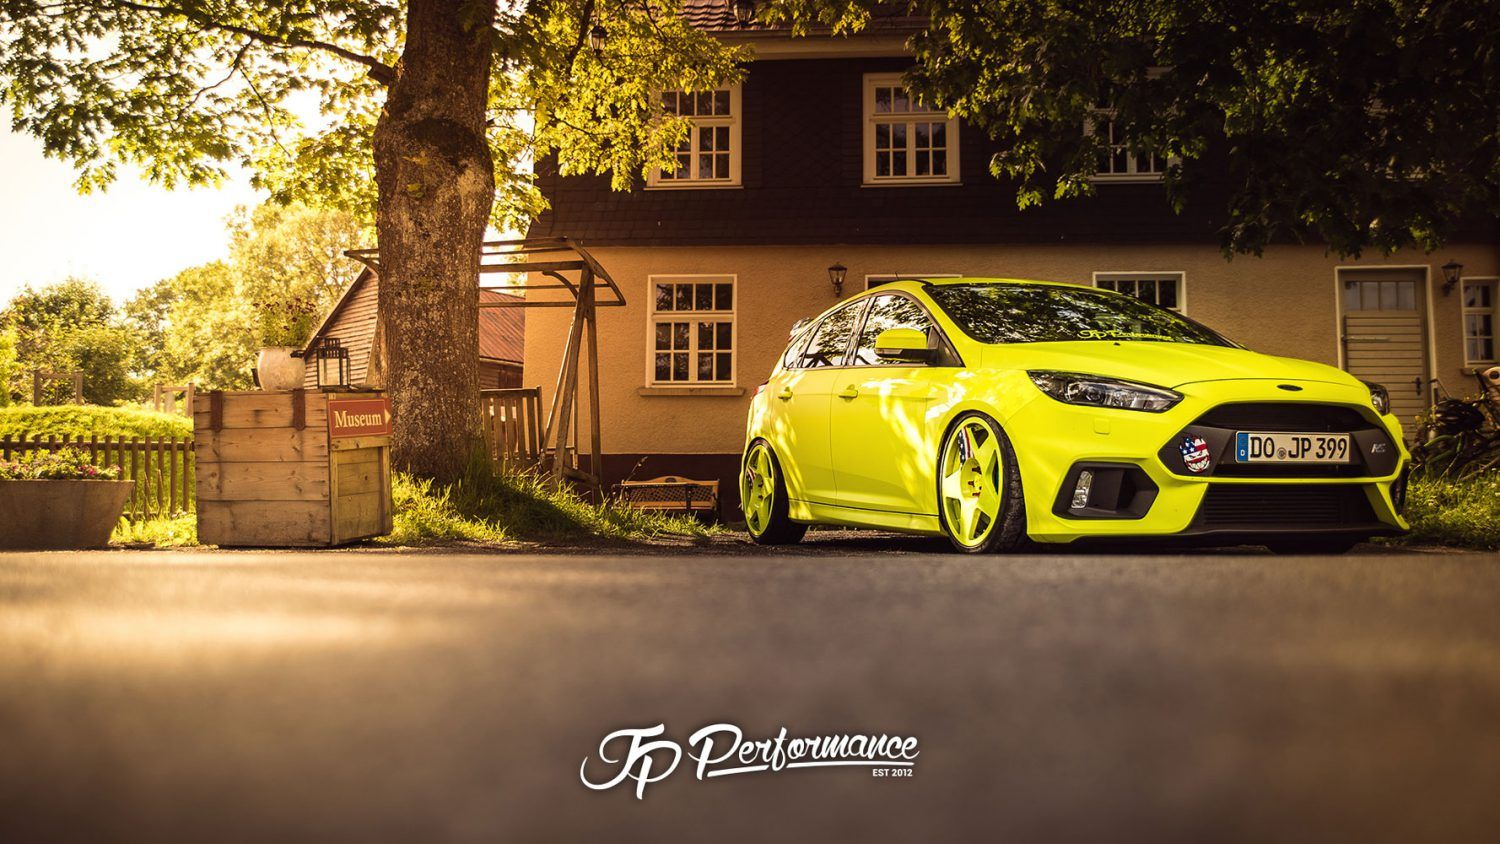 Jp Performance Ford Focus Rs Wallpaper